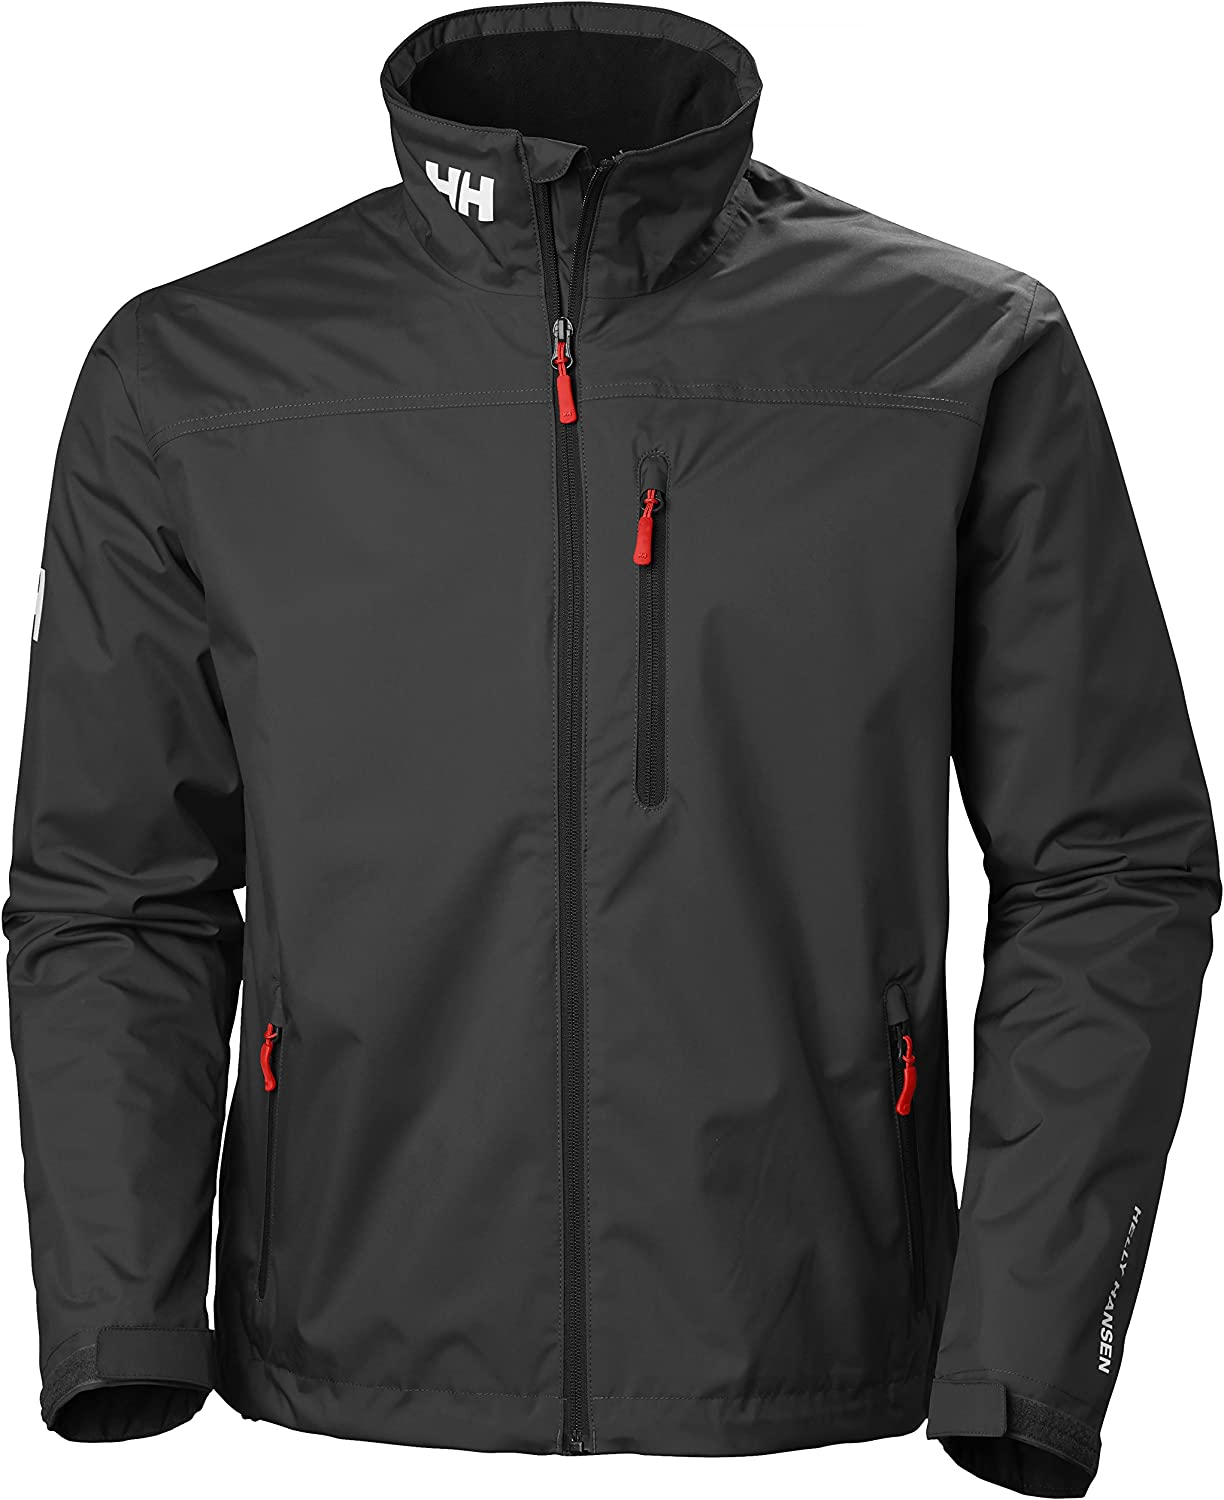 Helly Hansen Crew Midlayer, giacca impermeabile